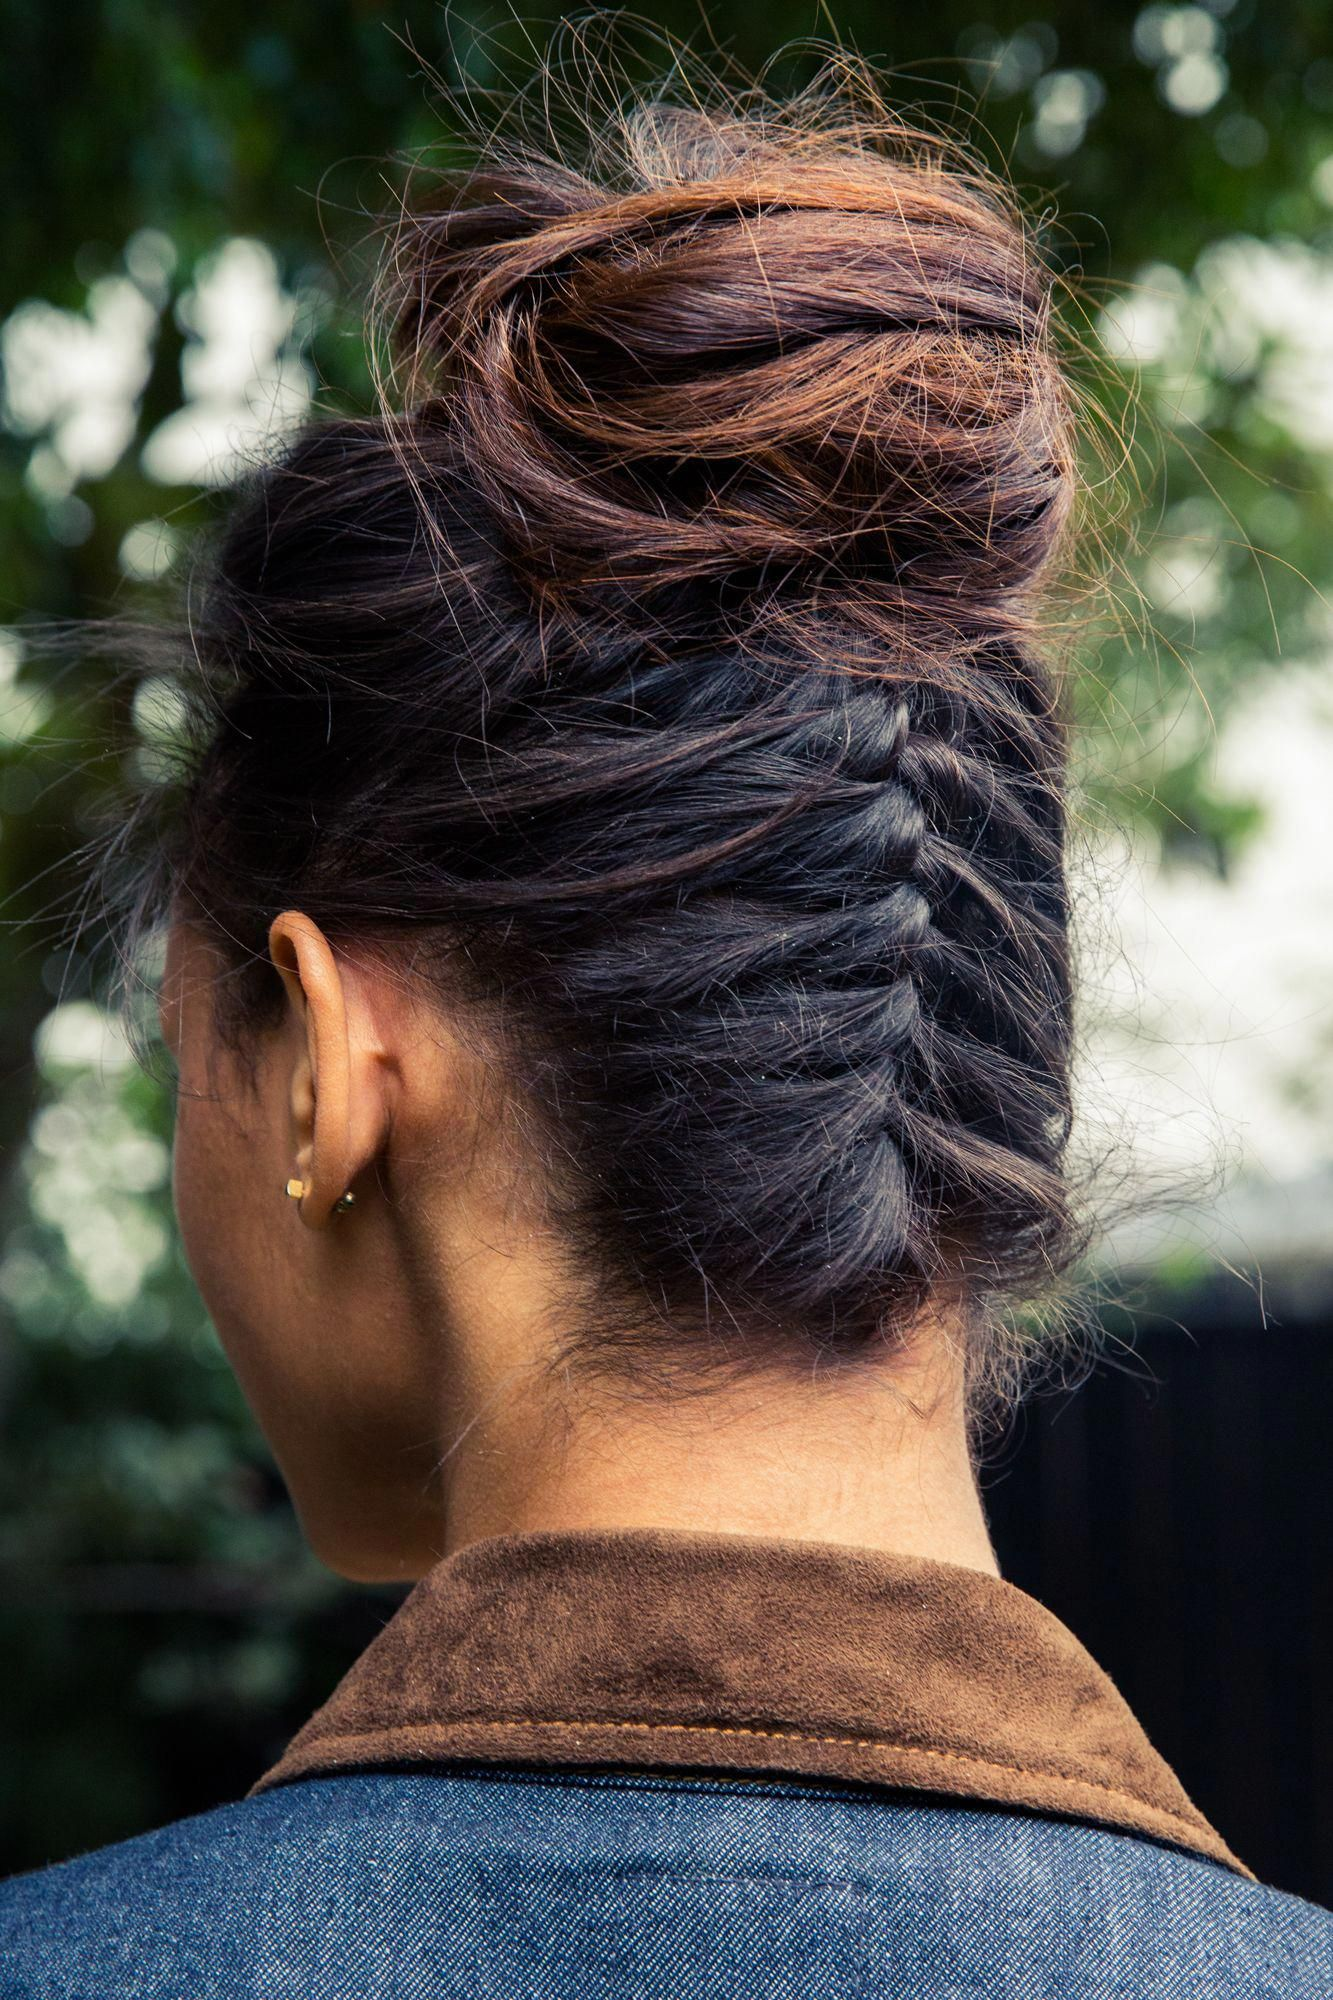 Hairstylist Dax Sarmiento Of Mare Salon In La Showed Us How To Do A Braided Bun This Year S Update To The Braid Hair Styles Braided Bun Hairstyles Easy Braids